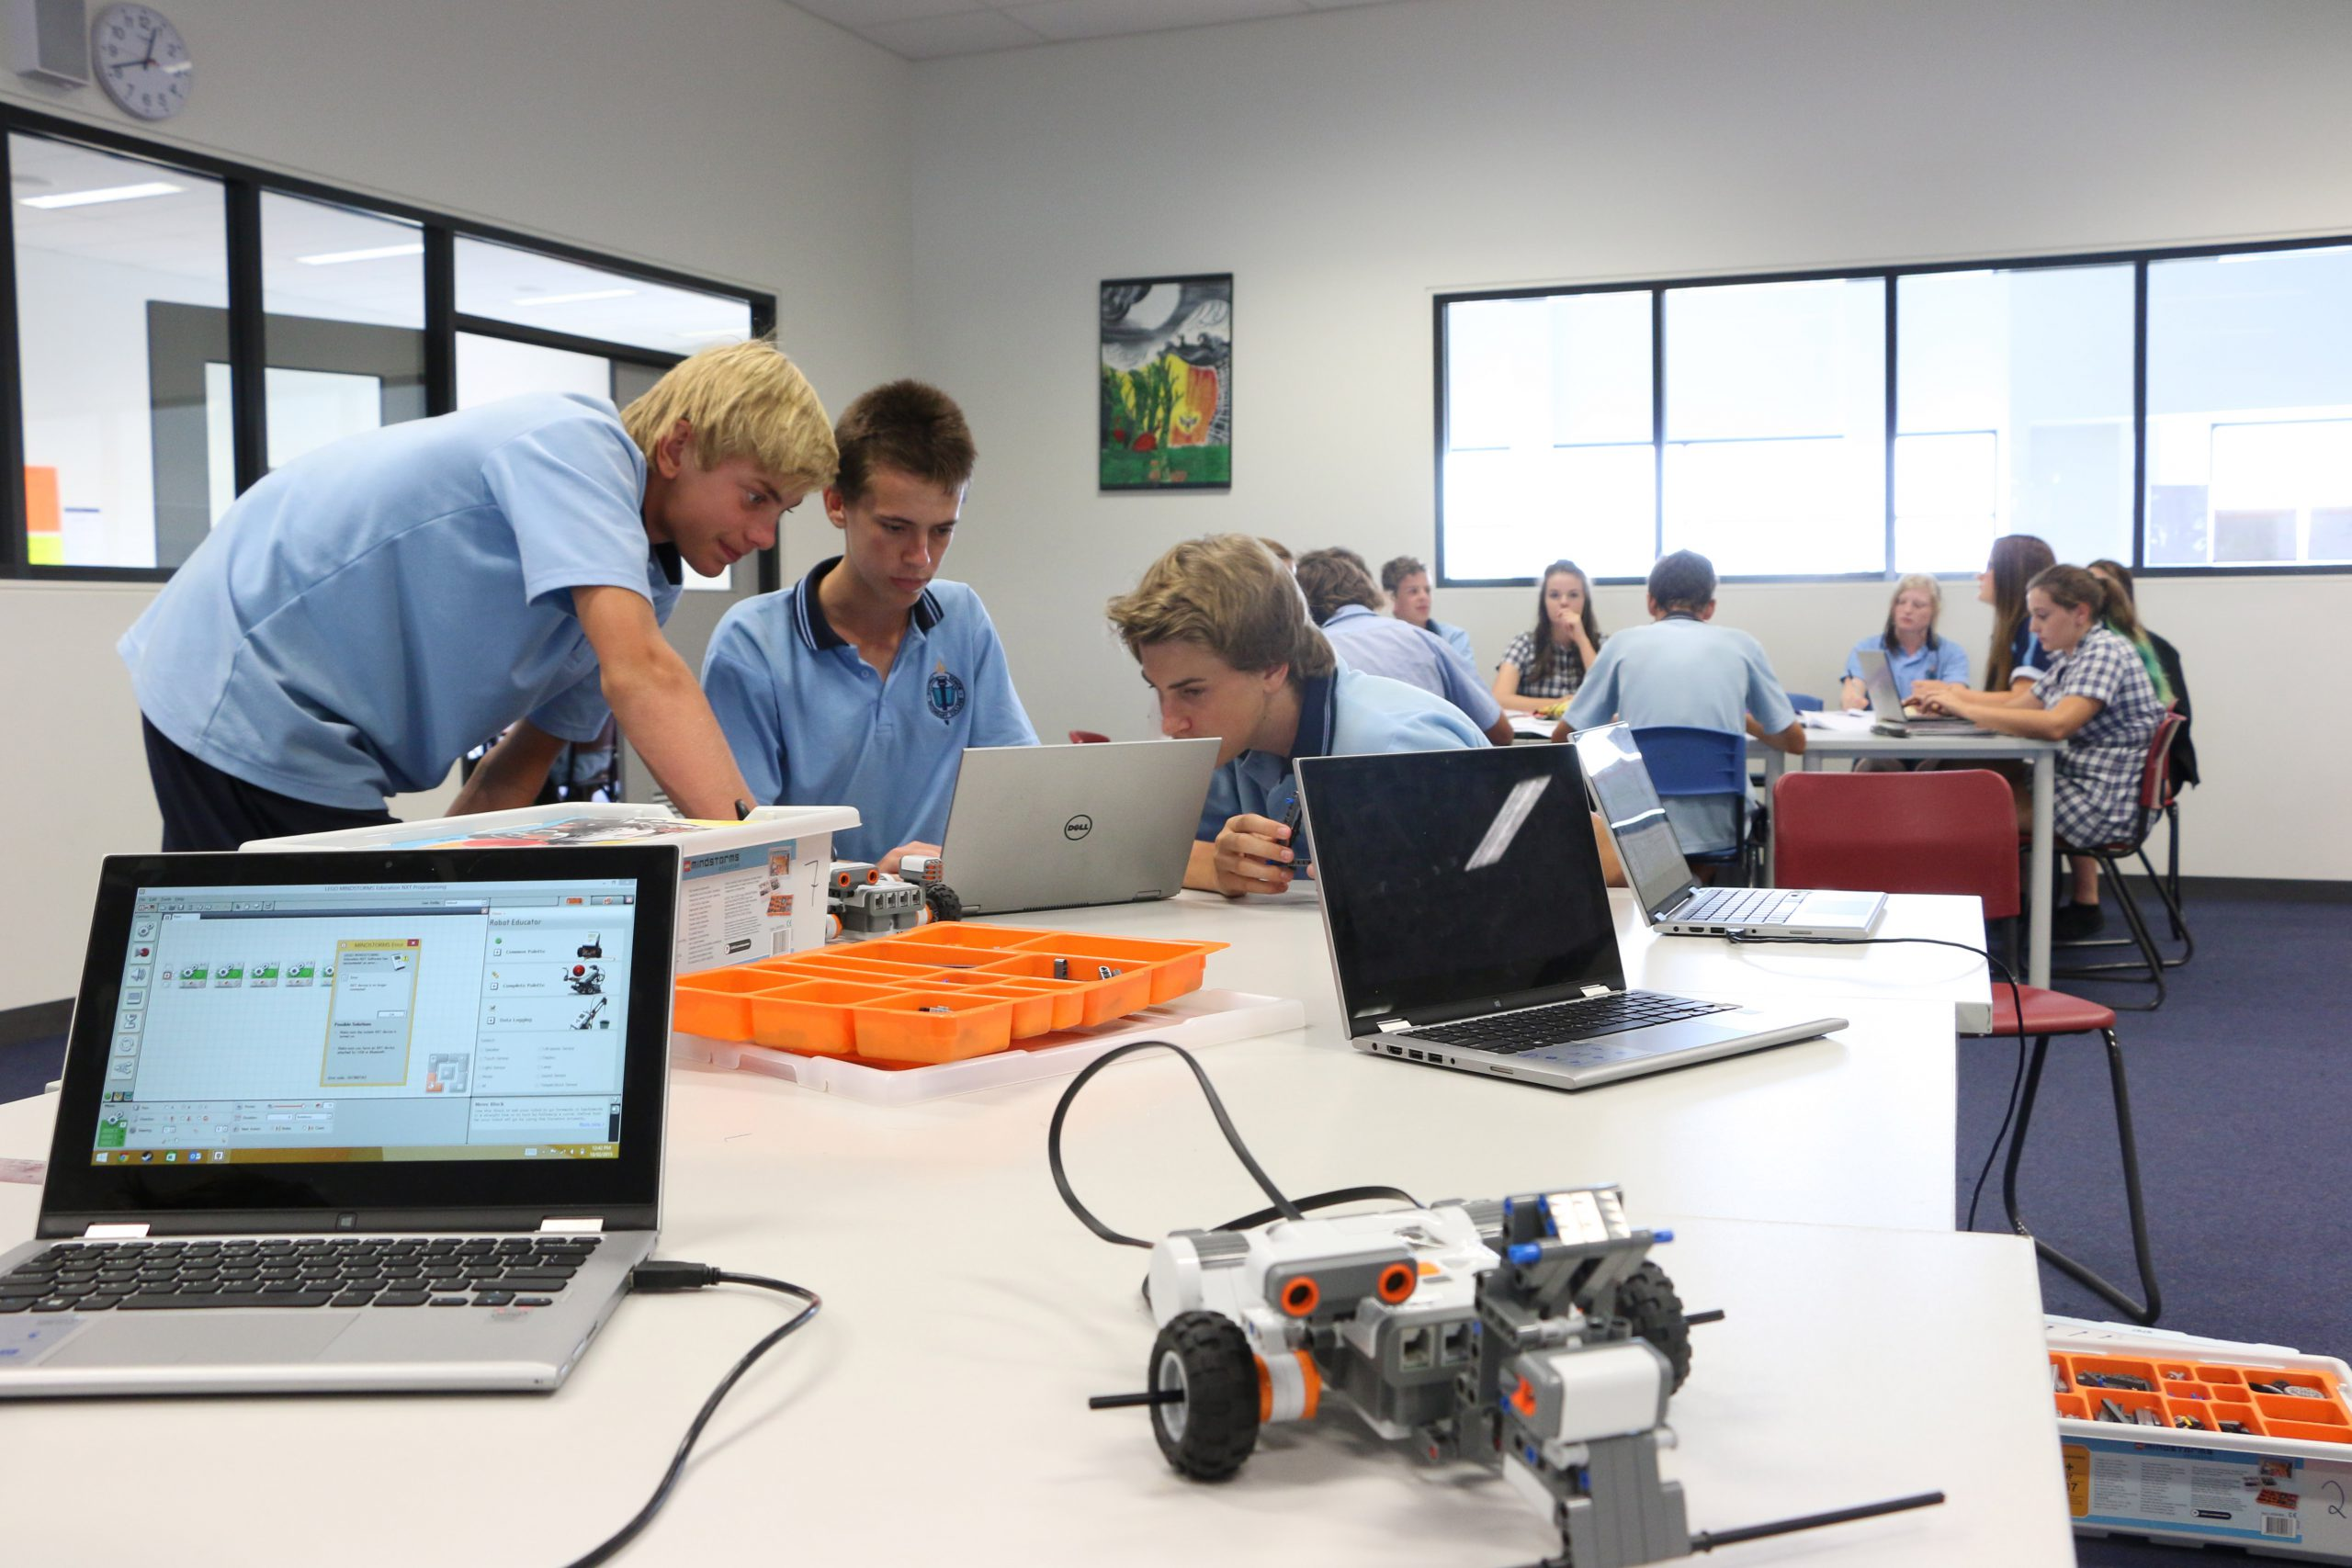 Robotics and Internet of Things